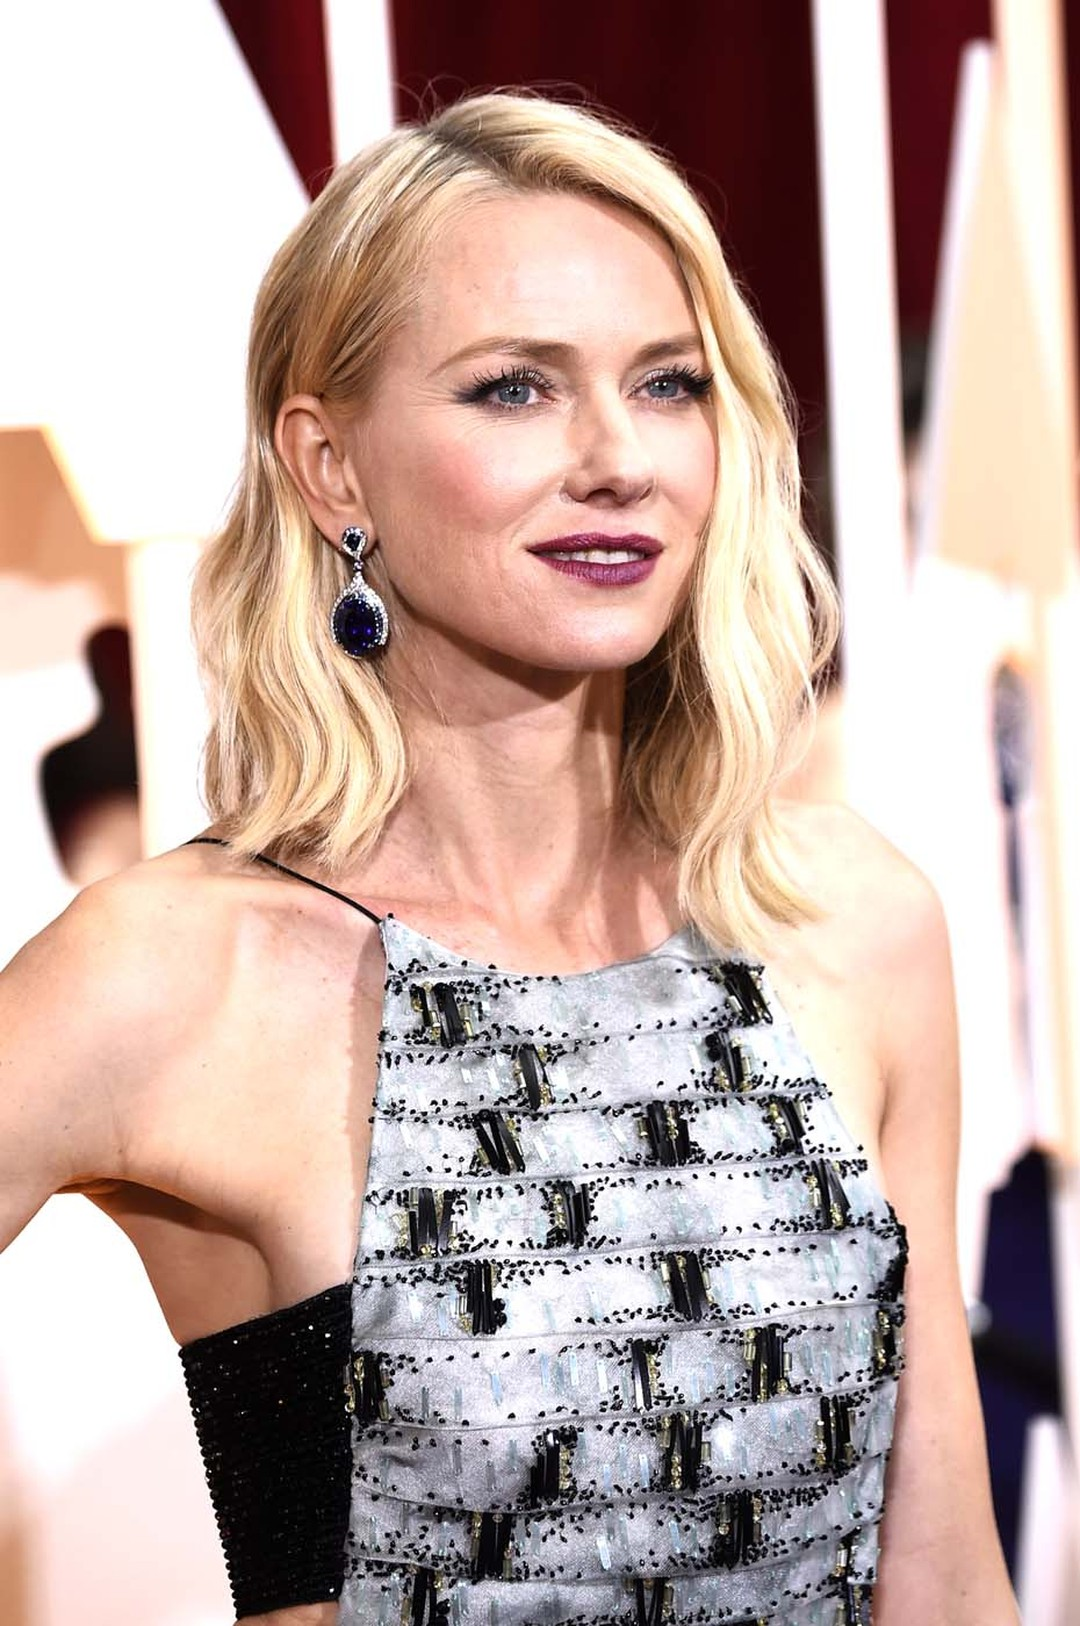 Actress Naomi Watts wore a one-of-a-kind Wallis Simpson Bracelet and Modern Art Deco sapphire earrings, both by Anna Hu, on the Oscars 2015 red carpet.